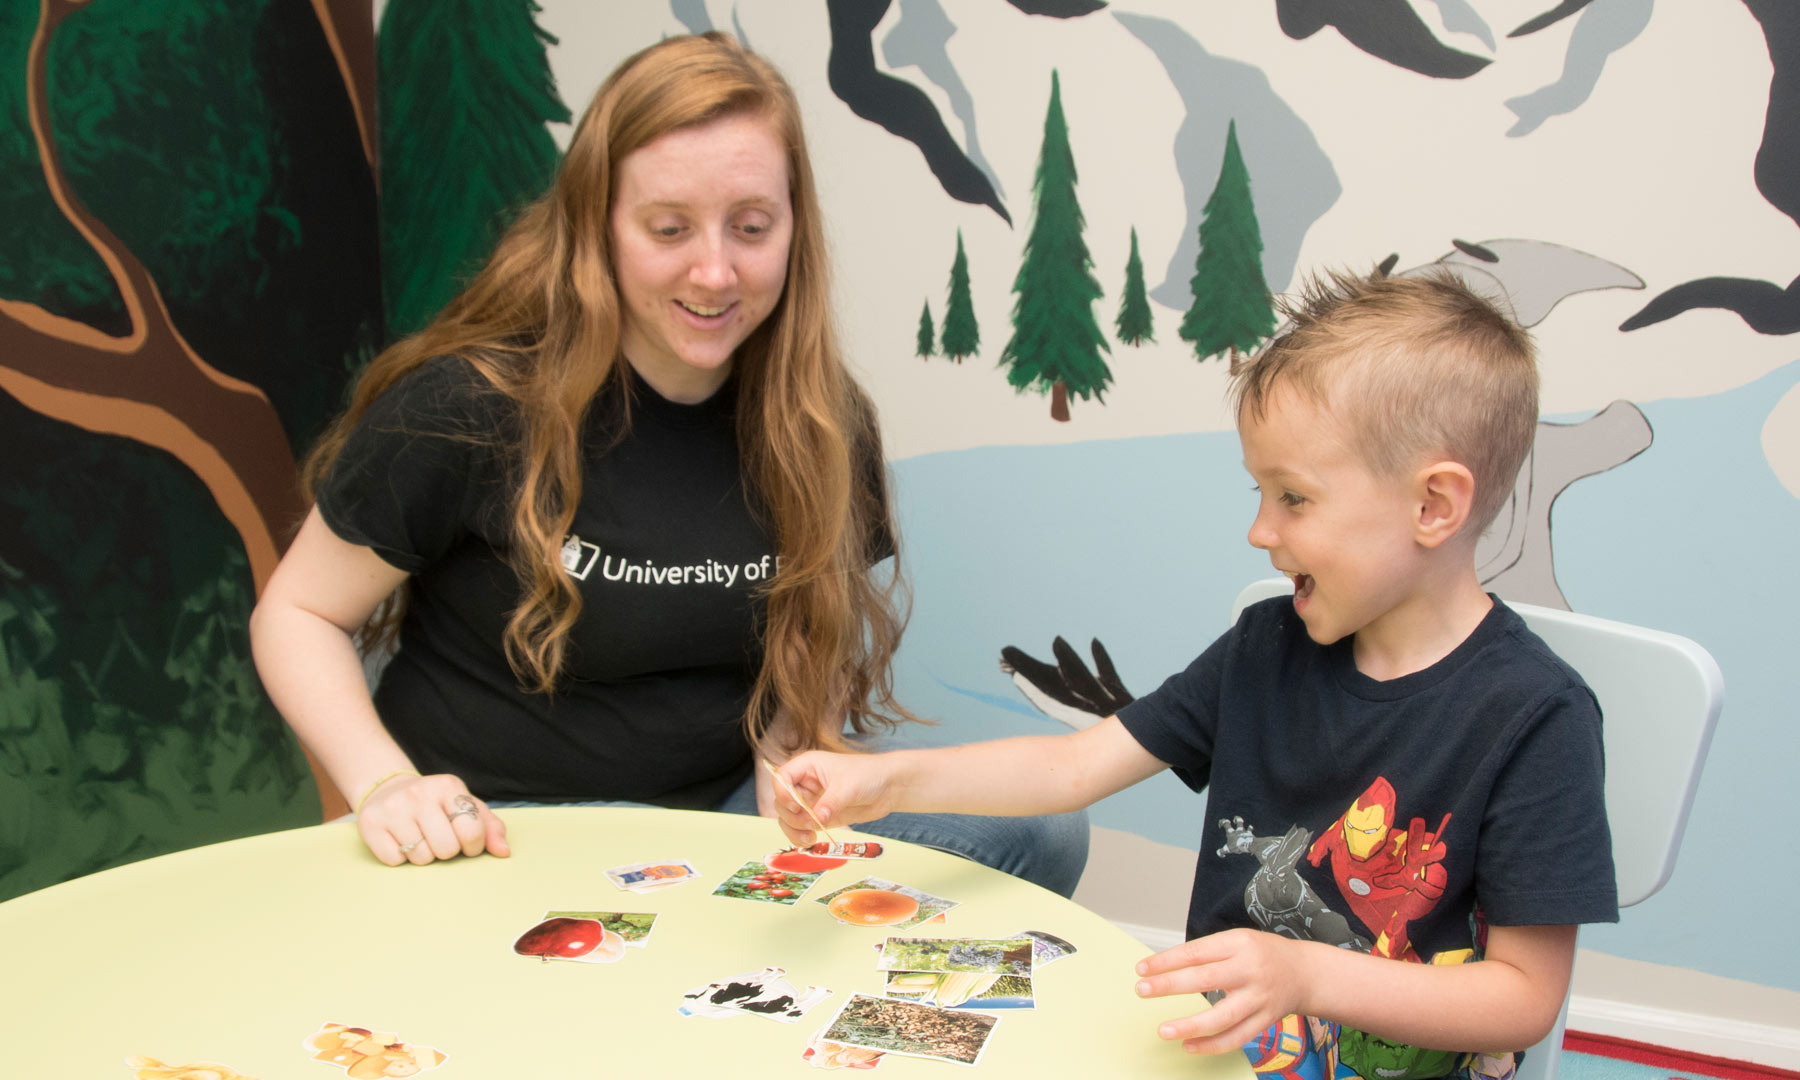 Findlay student plays game with elementary school aged child